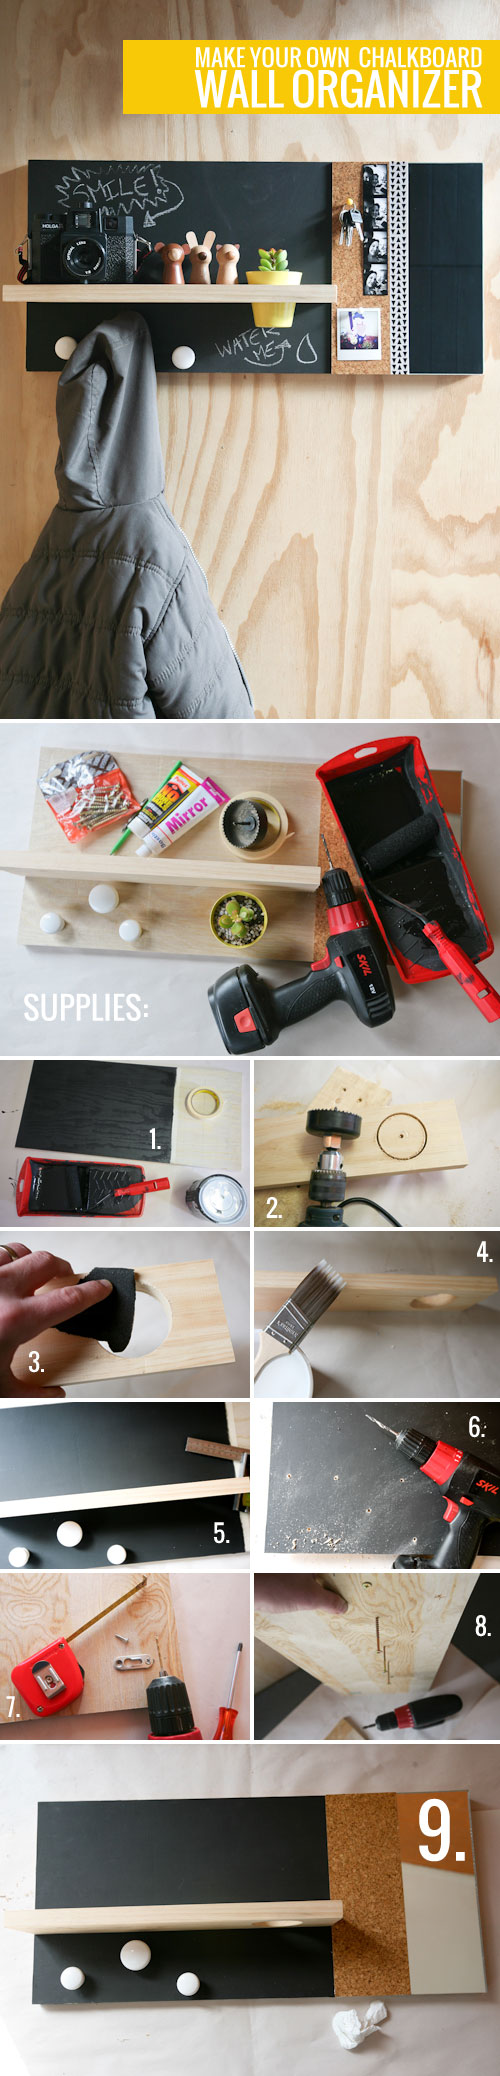 Make Your Own Chalkboard Wall Organizer